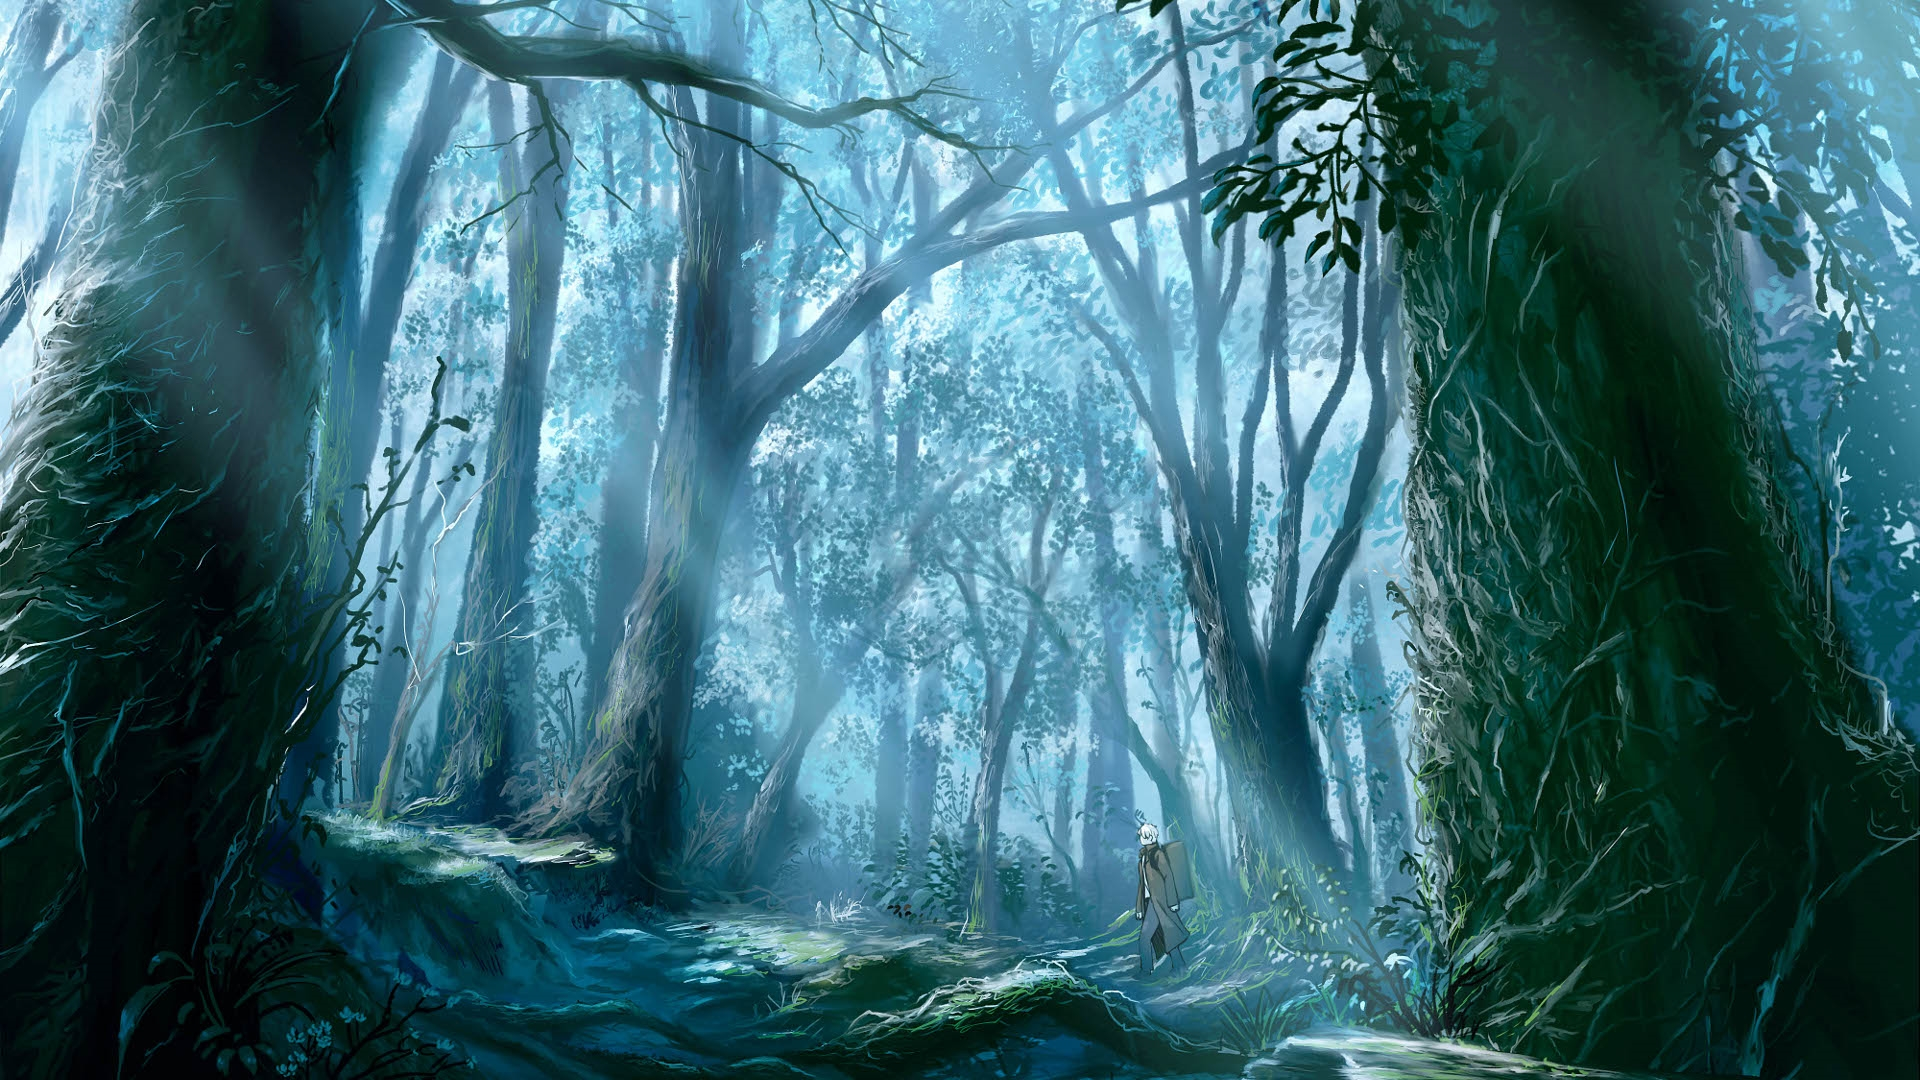 Anime Forest Download Free Wallpaper Image Search